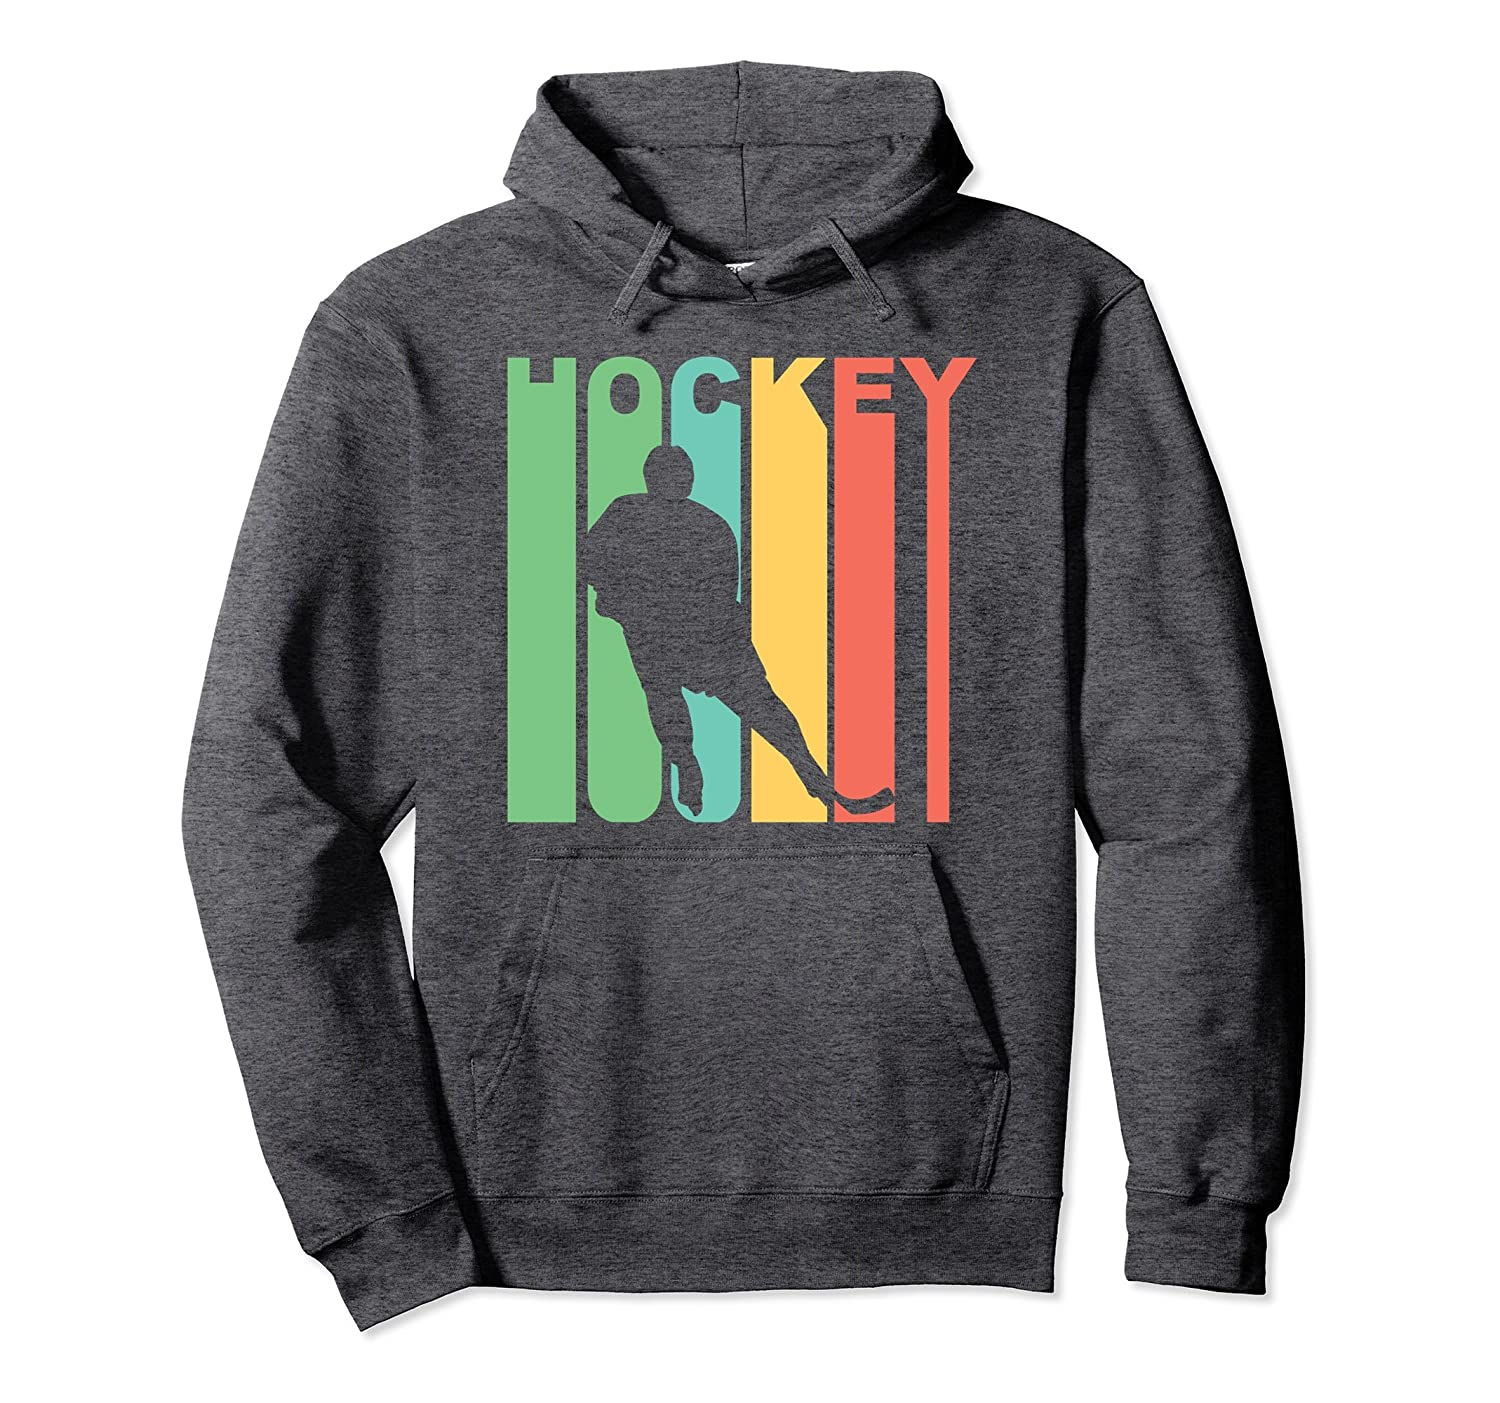 Retro 1970's Style Hockey Player Sports Hoodie